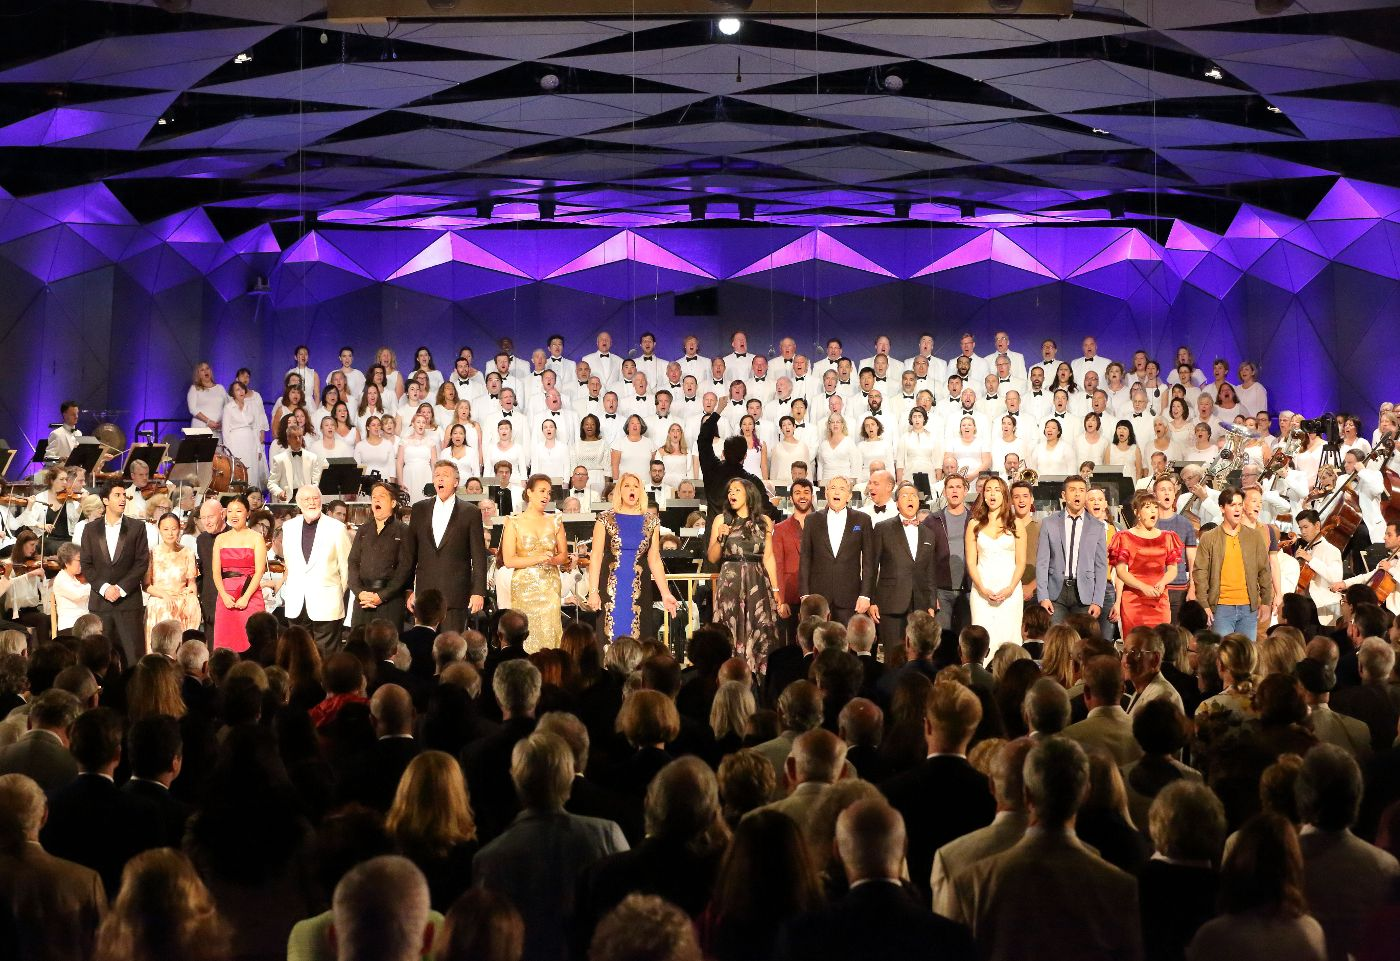 Bernstein Centennial Celebration at Tanglewood ends with full cast singing Somewhere as an encore; Hilary-Scott photo.